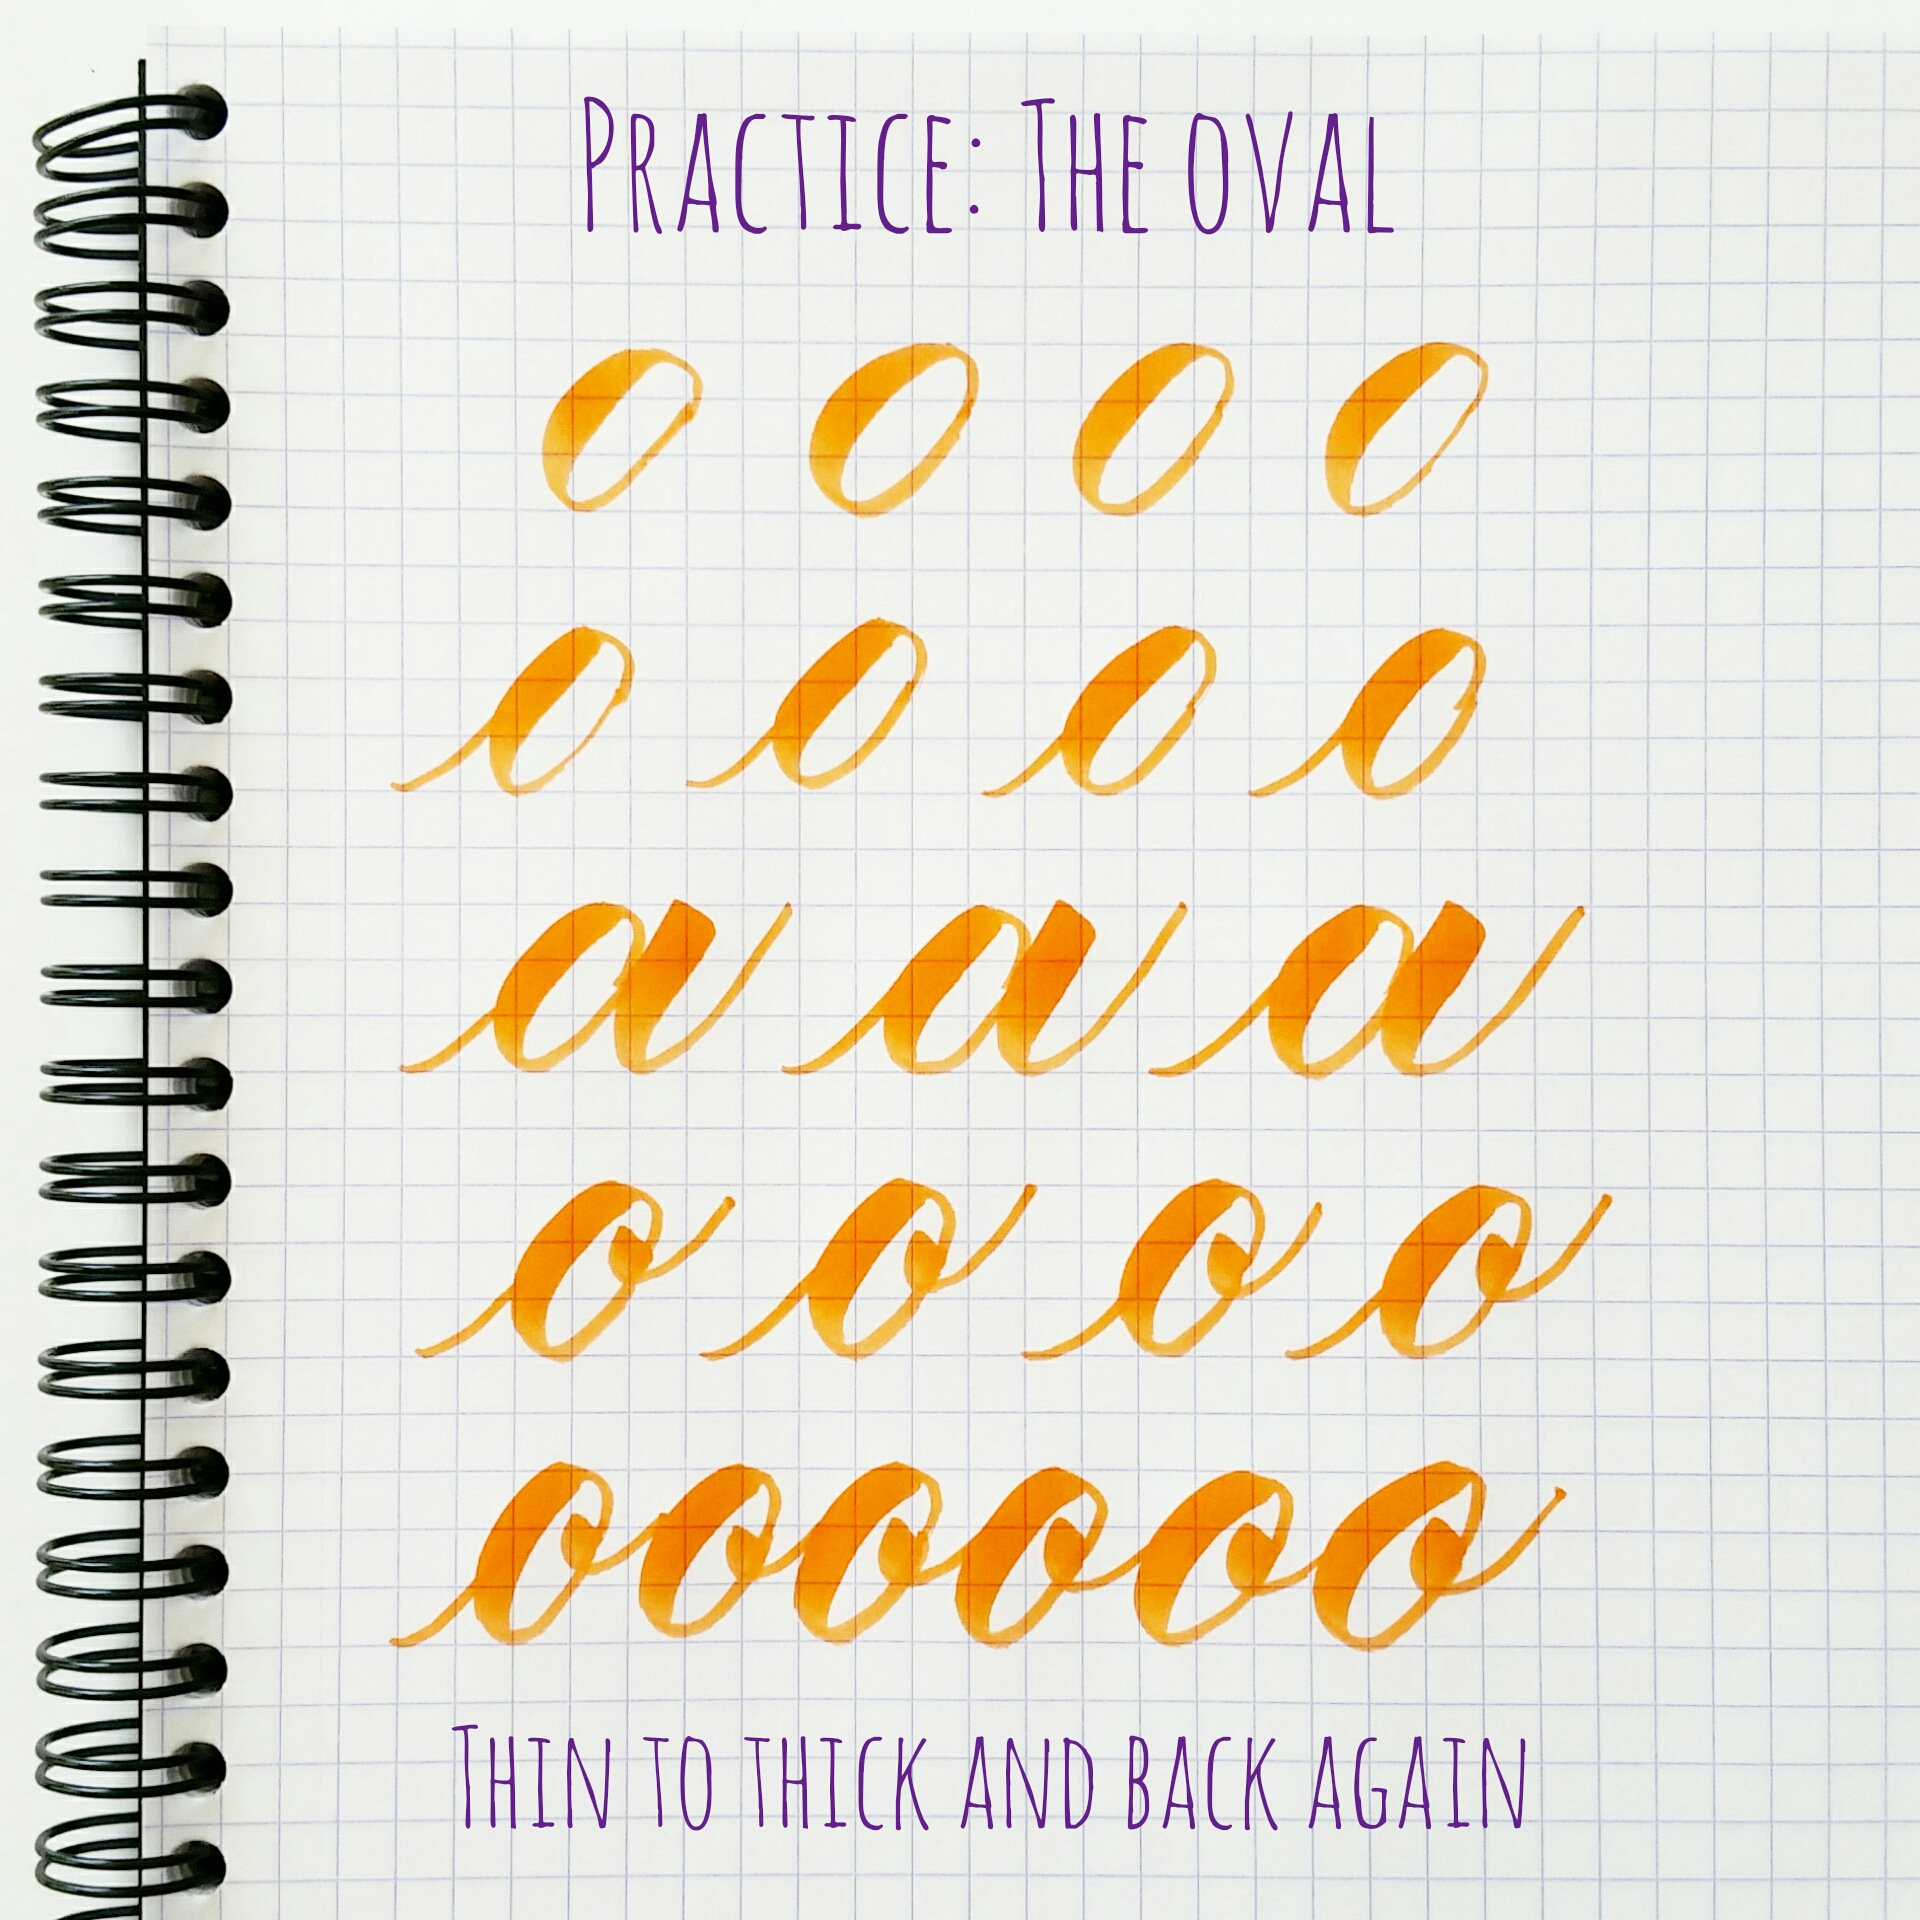 Letter Formation for Brush Lettering and Modern Calligraphy